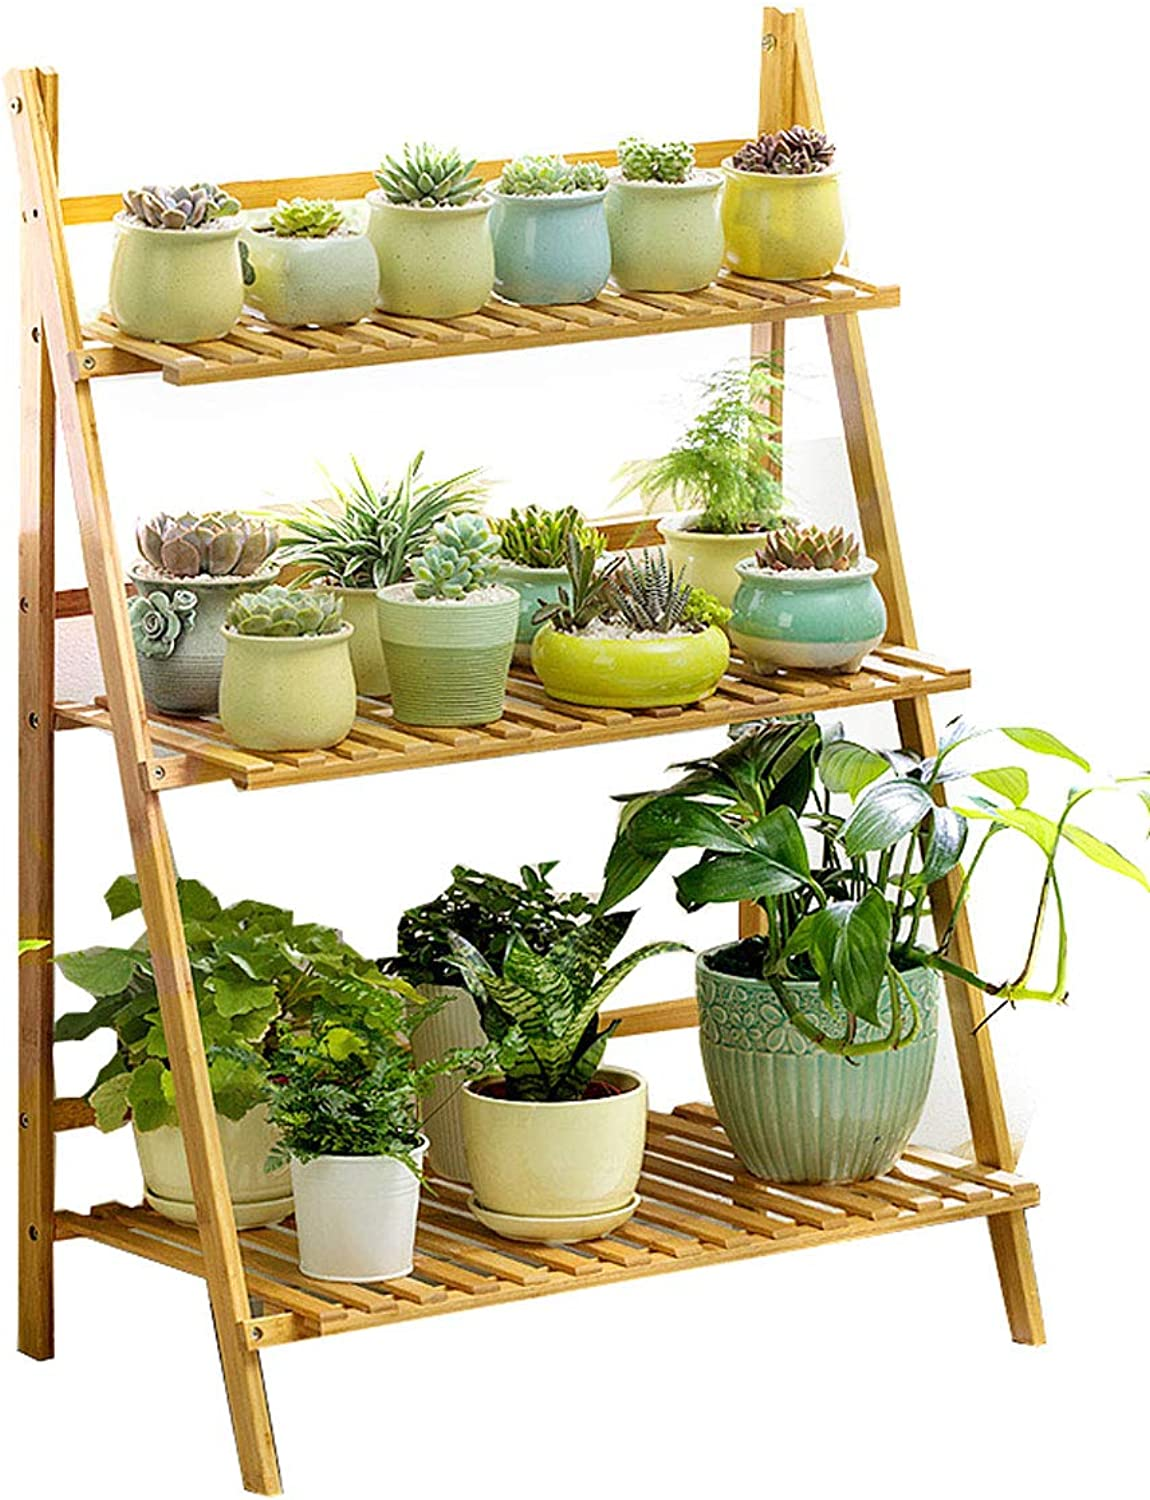 DLoob Natural Bamboo Shelf Plant Stand Display Ladder-Shaped Plant Flower Stand Rack Storage Shelves